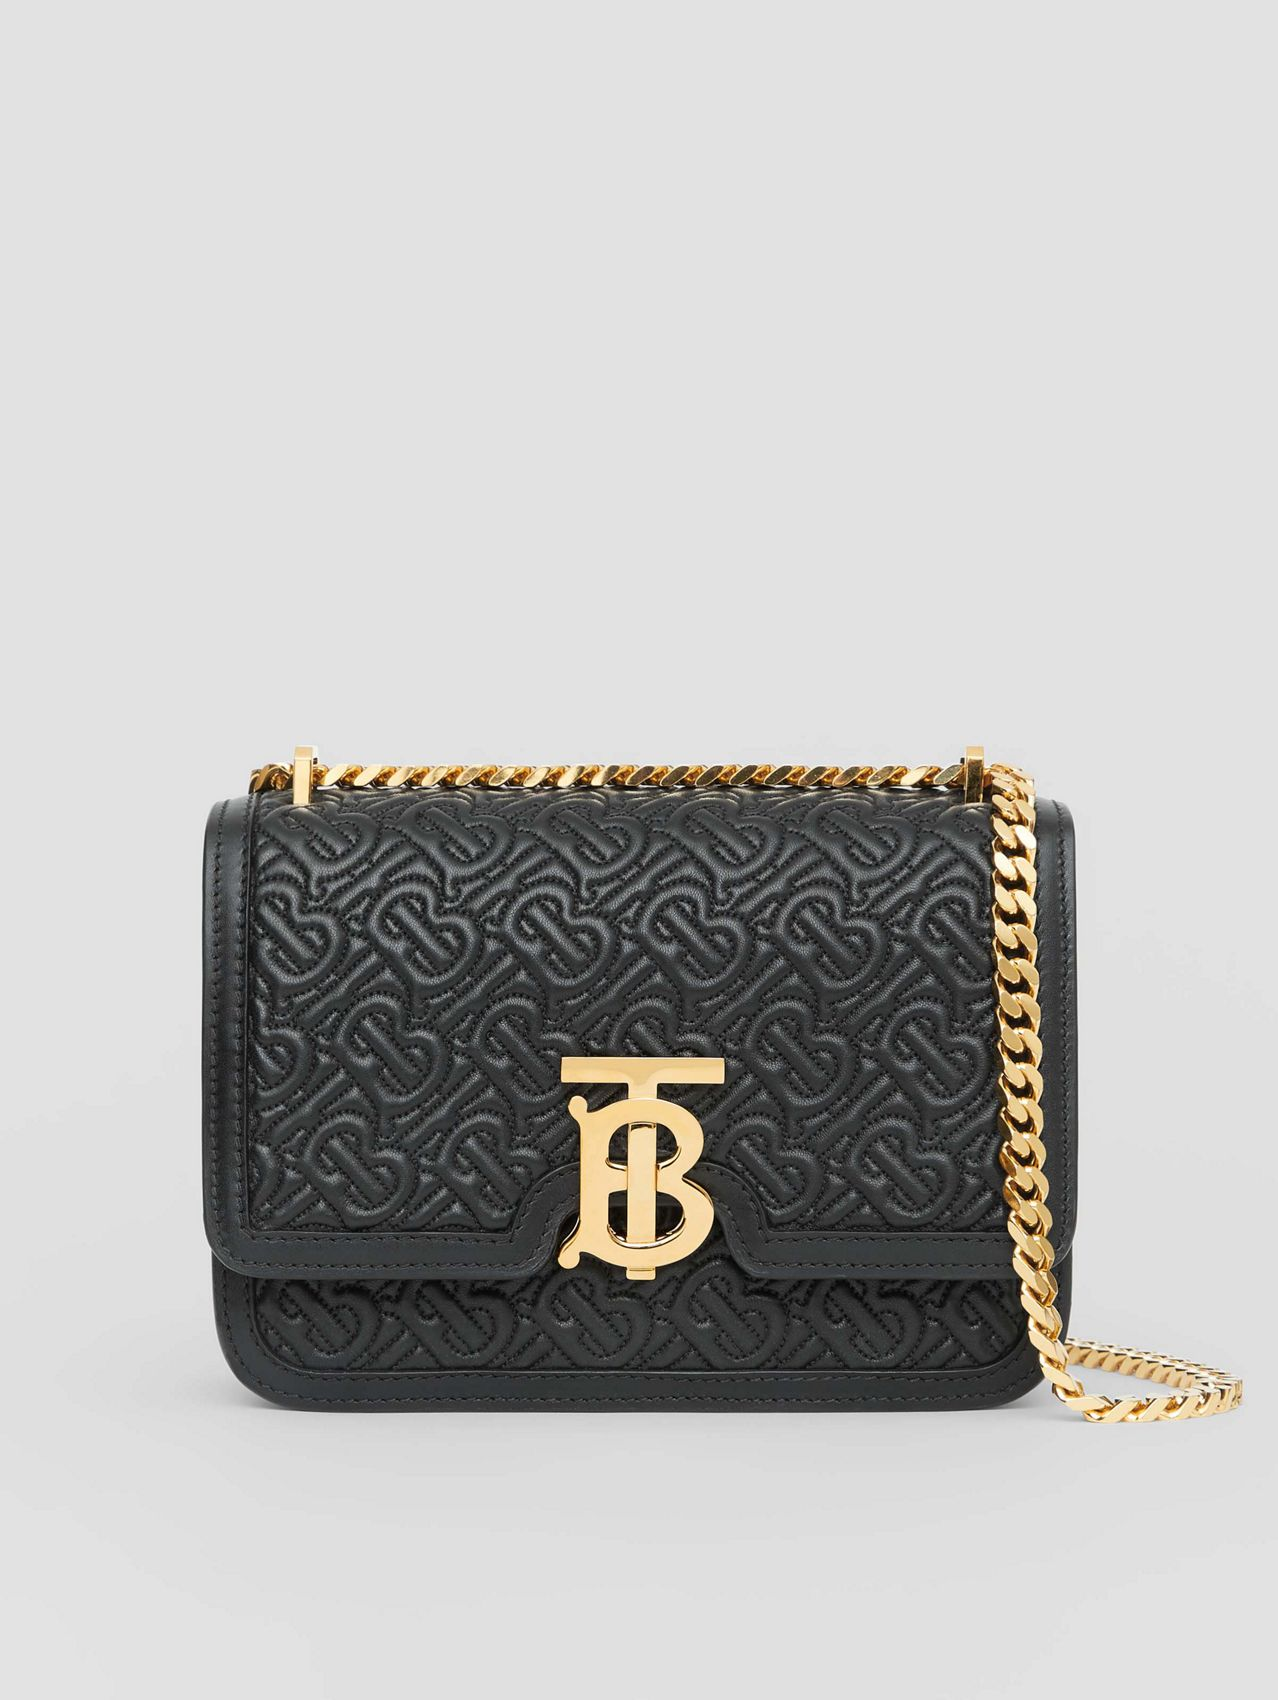 Small Quilted Monogram Lambskin TB Bag in Black